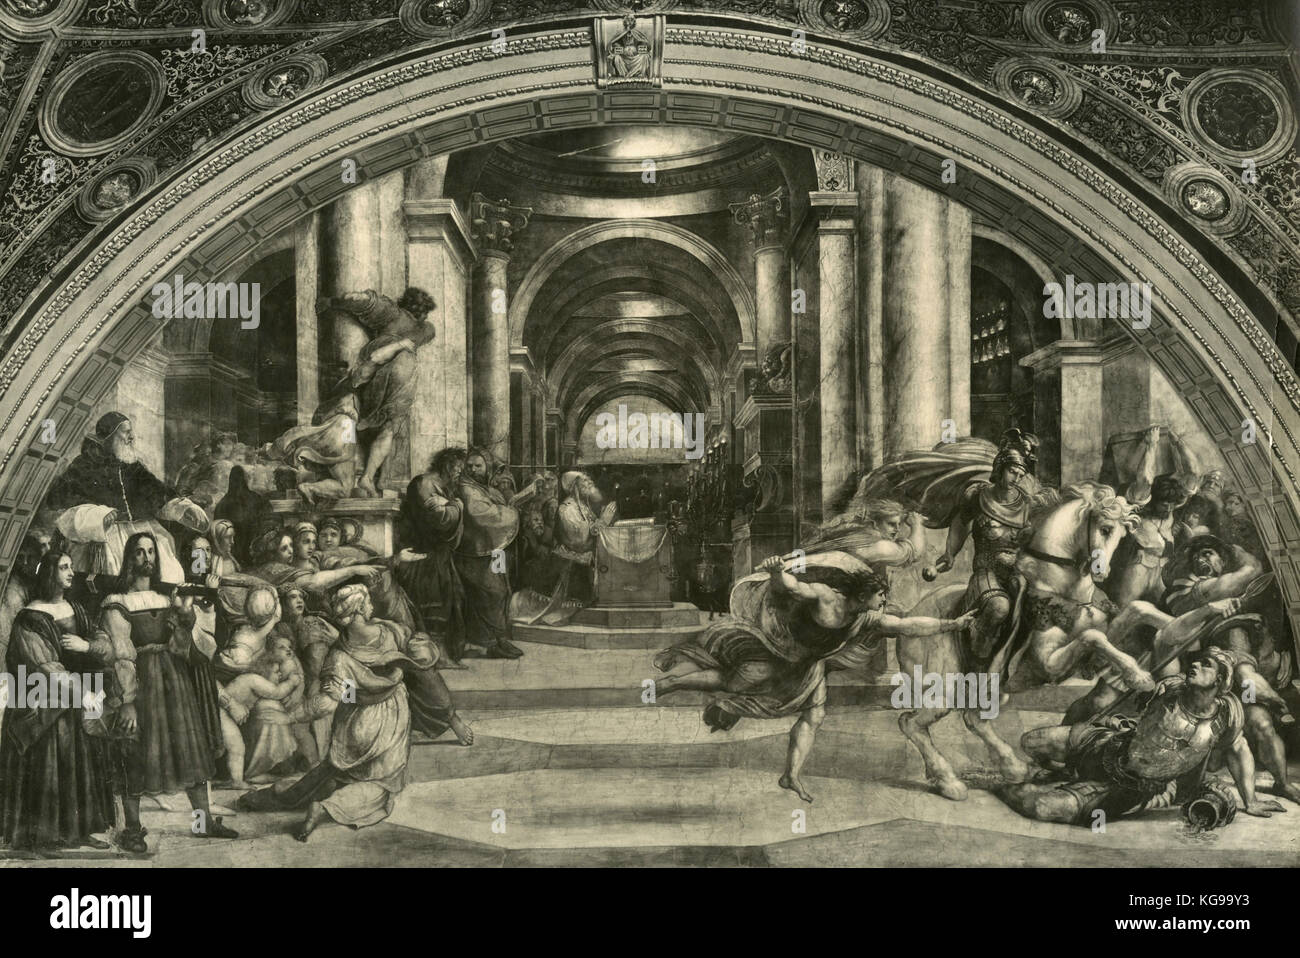 The Expulsion of Heliodorus from the Temple, Rapheal's Rooms, Vatican City - Stock Image